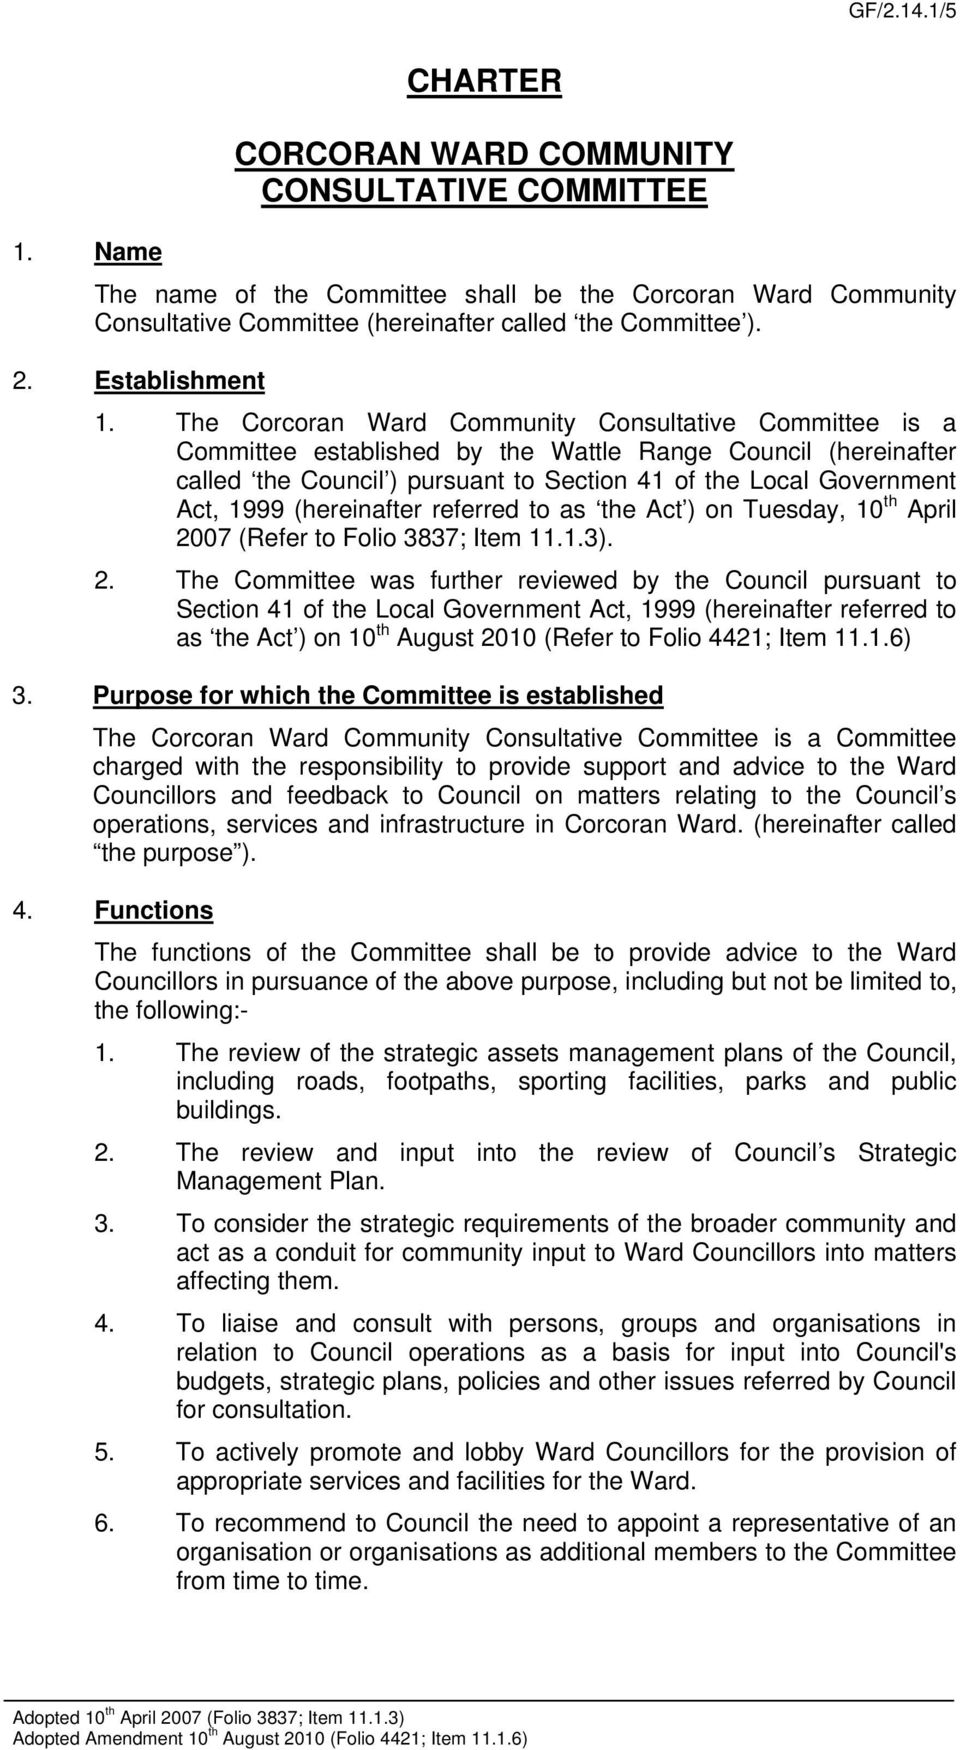 The Corcoran Ward Community Consultative Committee is a Committee established by the Wattle Range Council (hereinafter called the Council ) pursuant to Section 41 of the Local Government Act, 1999